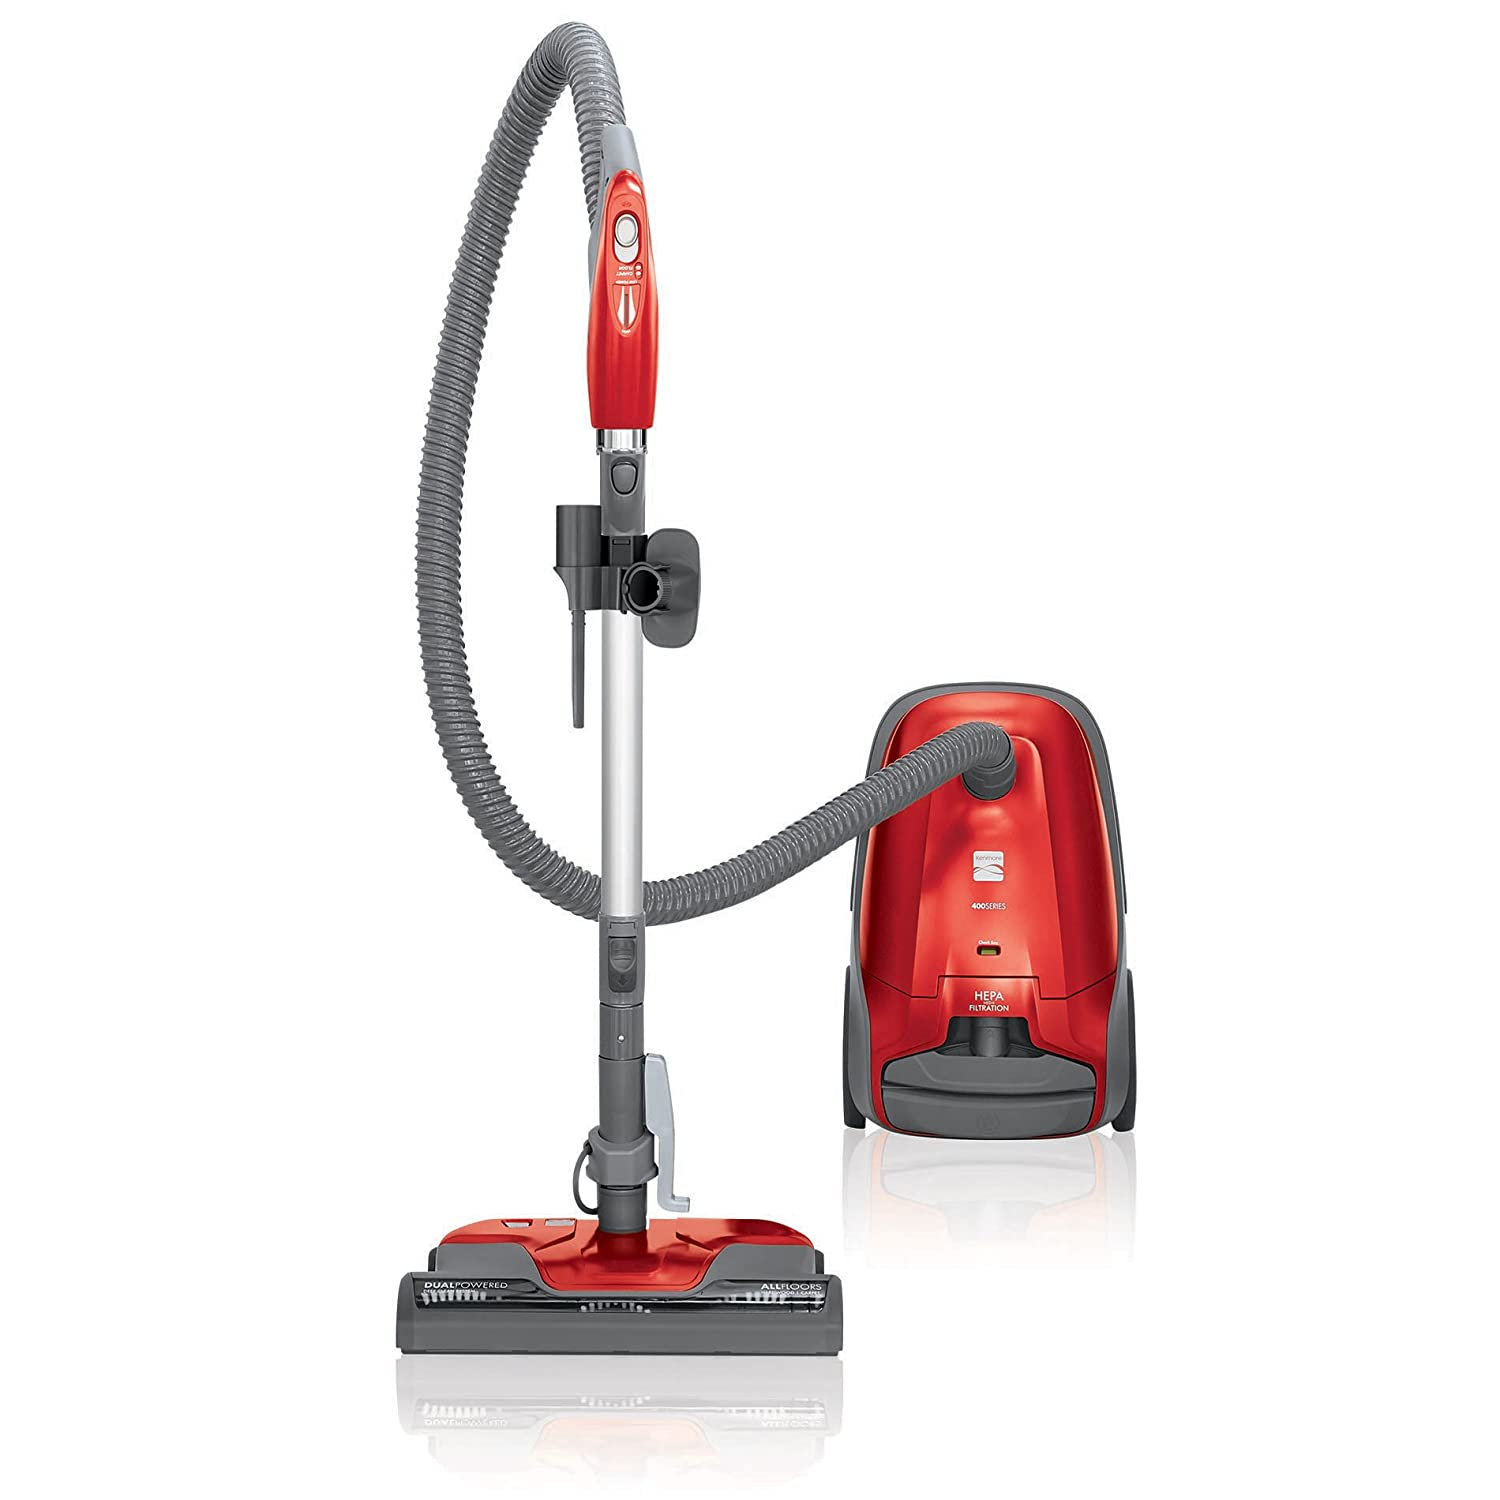 Kenmore 81414 Multi-Surface Bagged Canister Vacuum Cleaner with Cord Rewind and Extended Reach, Cherry